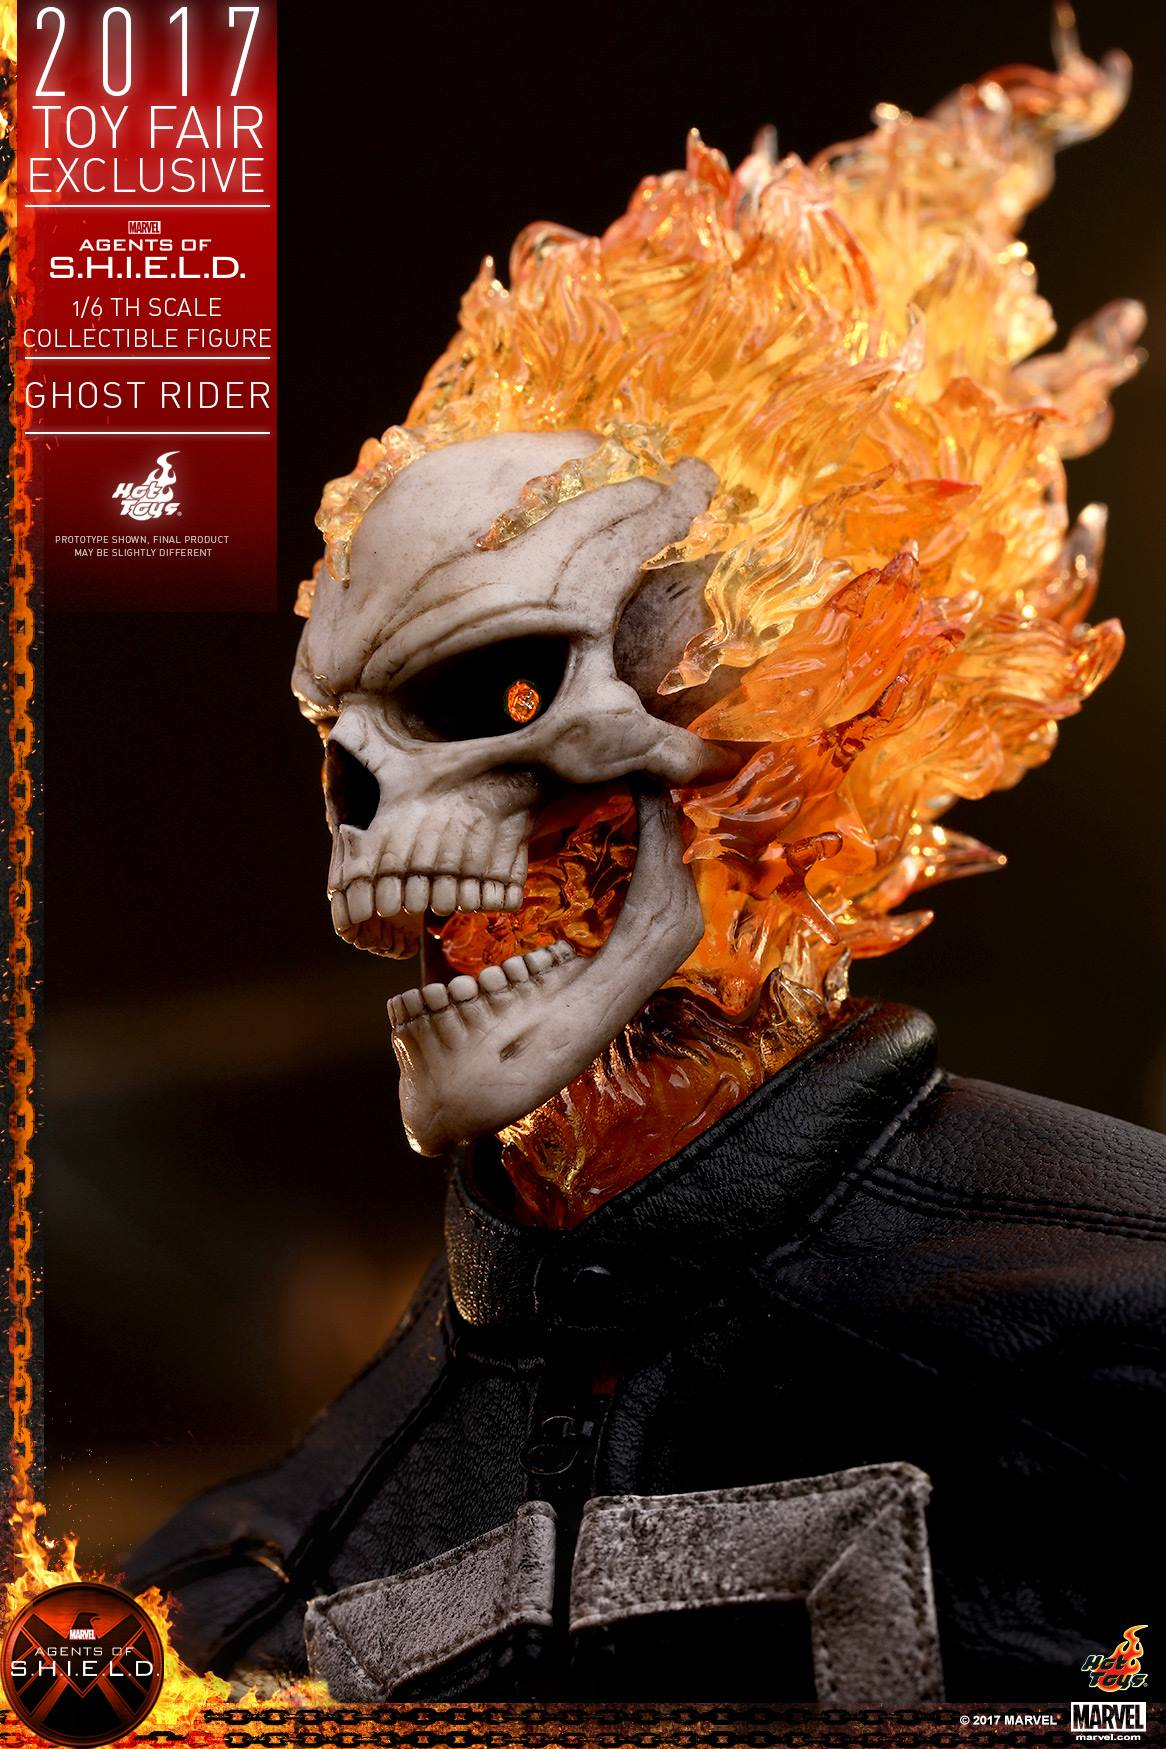 Hot Toys Reveals Agents of SHIELD's Ghost Rider Figure - SuperHeroHype